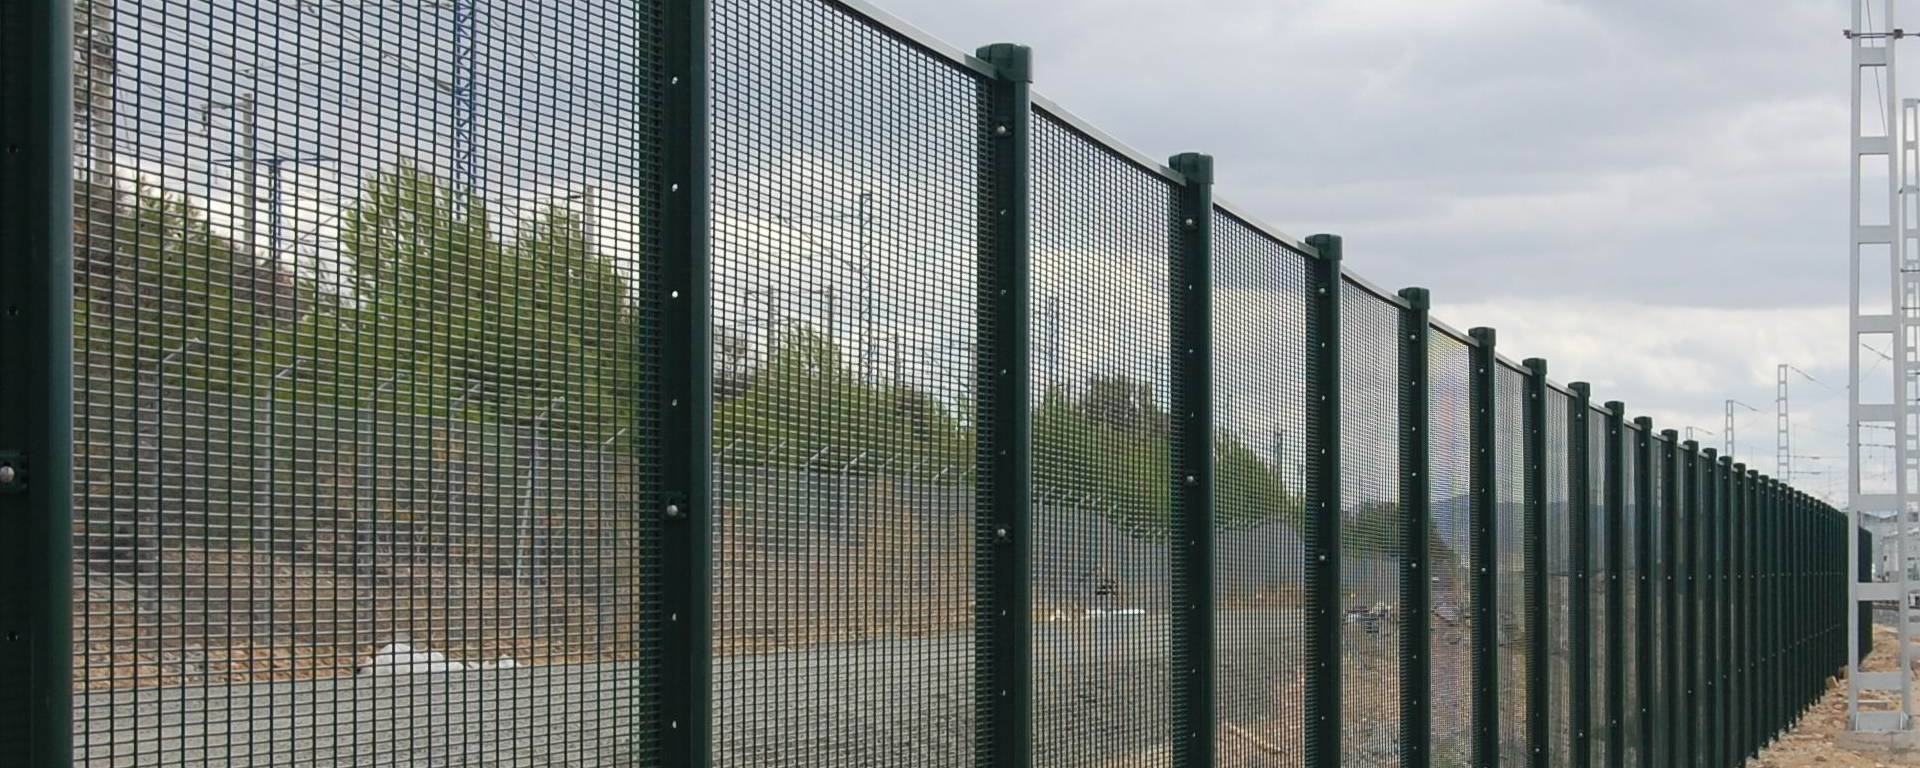 358 Mesh Fence - High Security Welded Panel Fencing Barrier